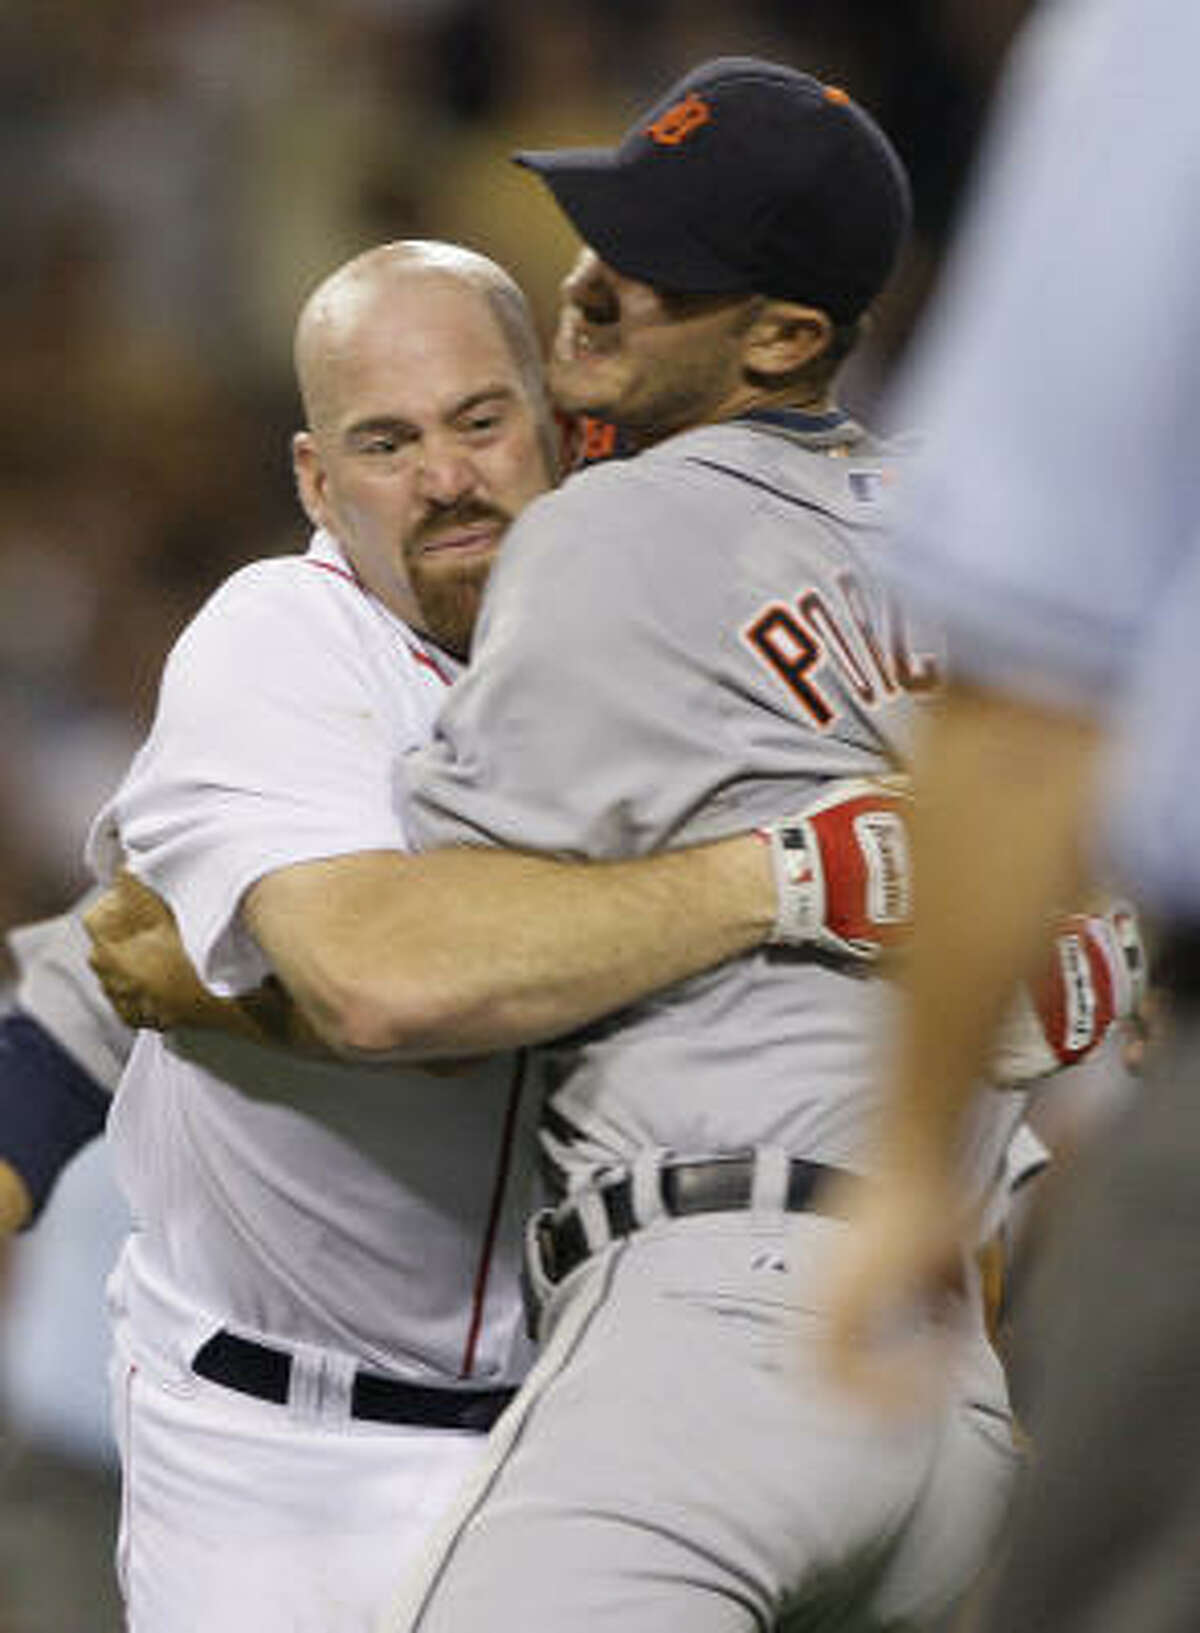 The Red Sox' Kevin Youkilis, left, wrestles with Tigers' starter Rick Porcello after being hit by a pitch in the second inning. Youkilis had been hit in Monday's game as well.